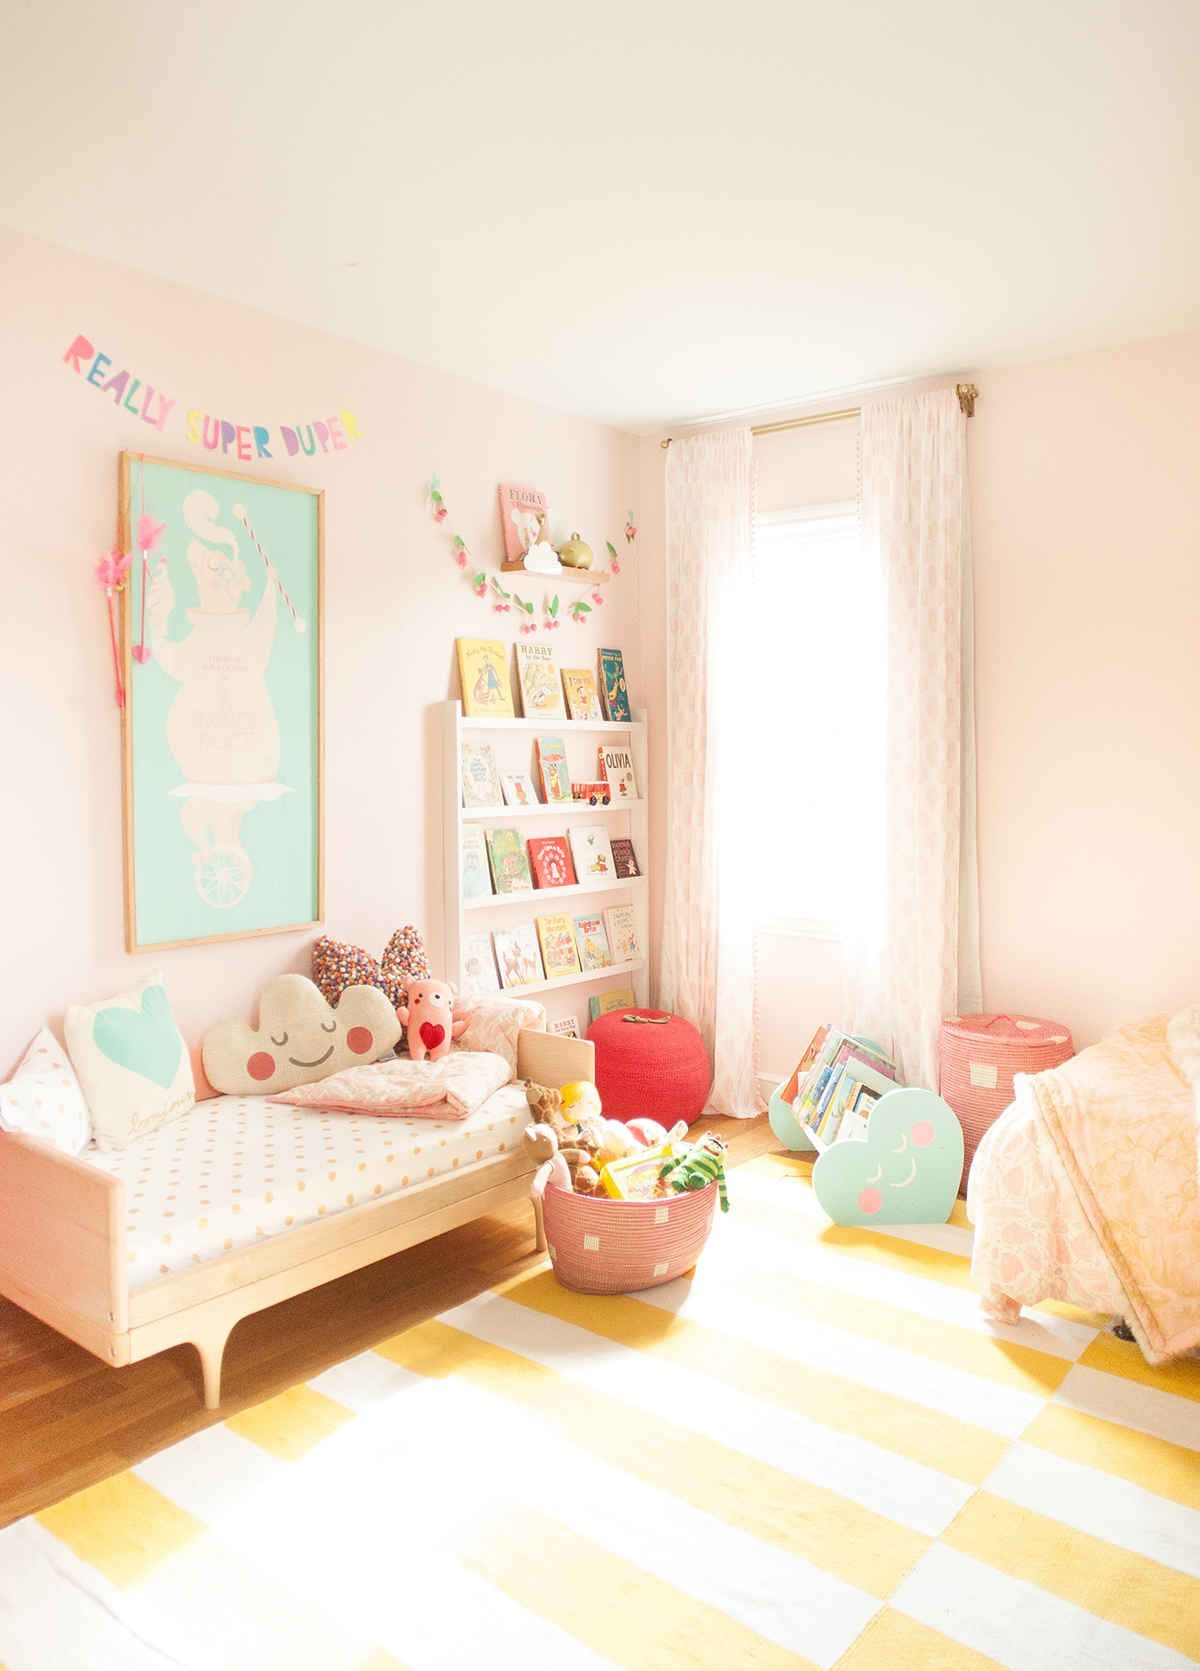 teens girl picture on bedroom decoration tutorials with for making curtains pink modern girls ideas teen teenage room curtain decorating projects homemade diy impressive